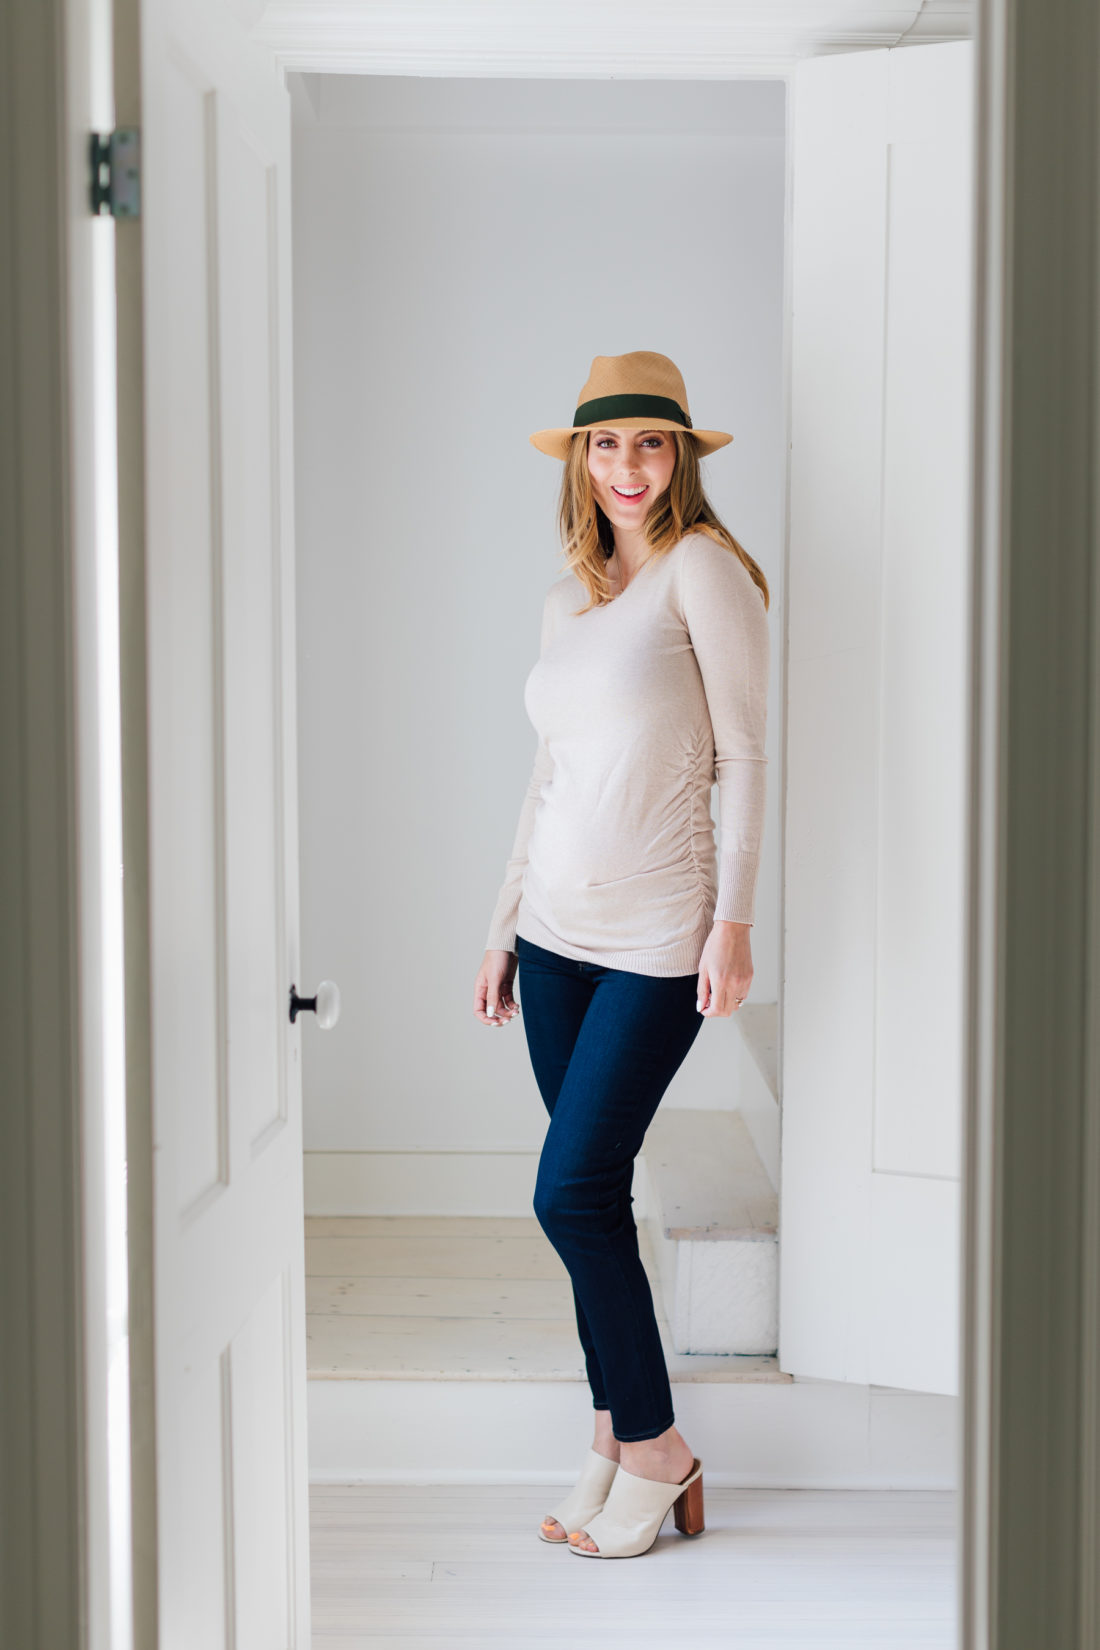 Pregnant Eva Amurri Martino gives her readers a first trimester update on her pregnancy.